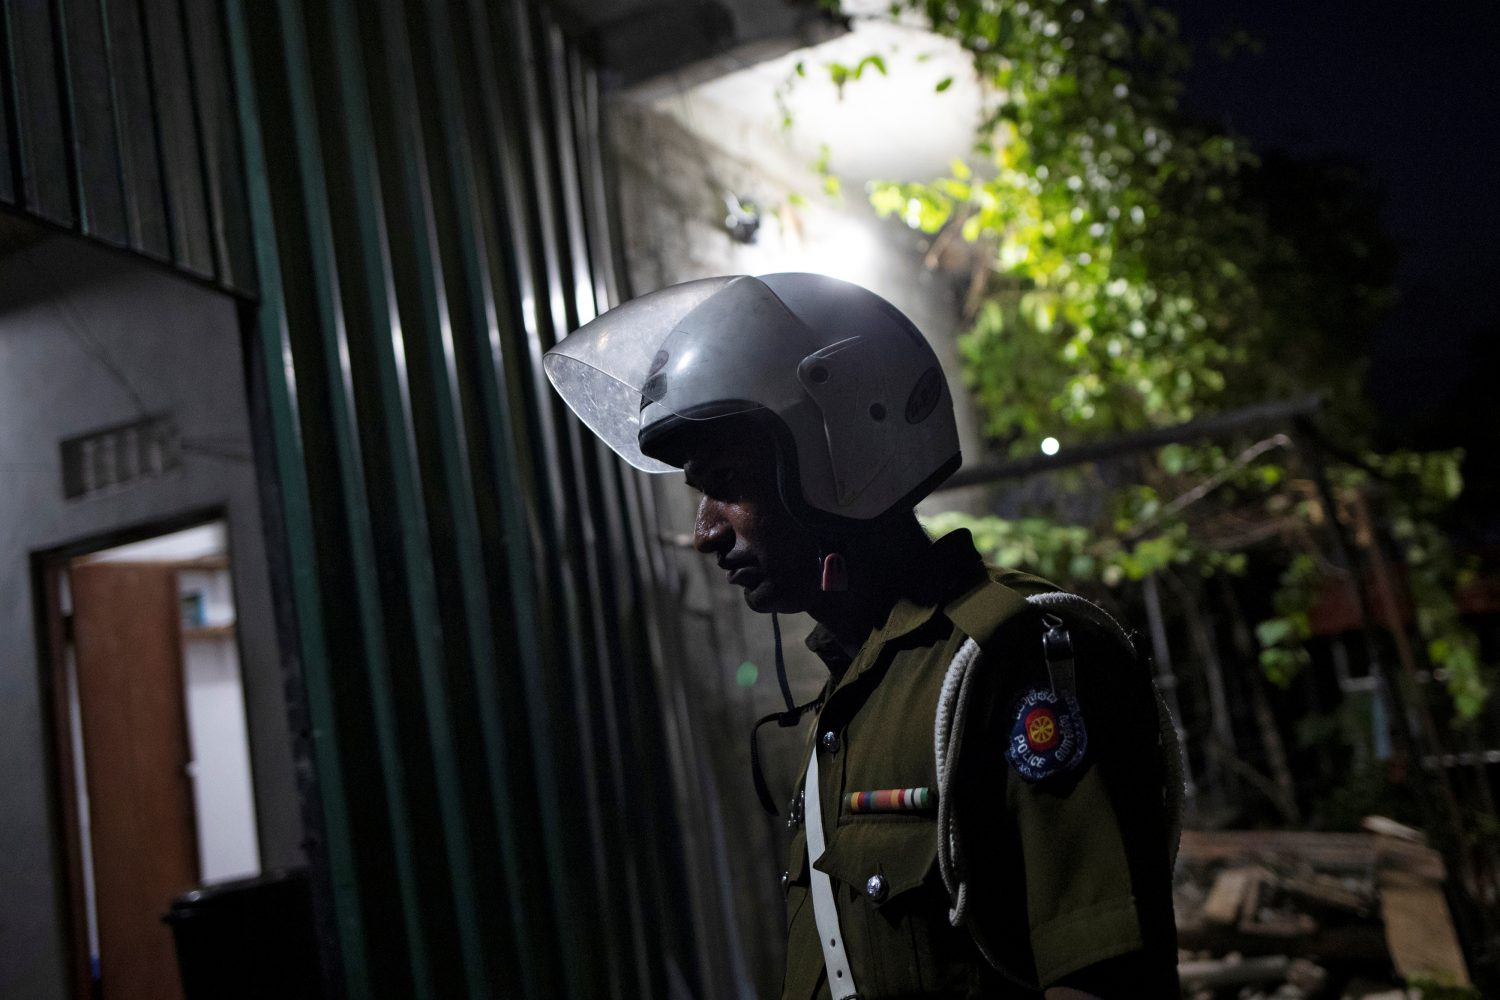 A police officer stands inside a training camp allegedly linked to Islamist militants, in Kattankudy near Batticaloa, Sri Lanka, May 5, 2019. REUTERS/Danish Siddiqui